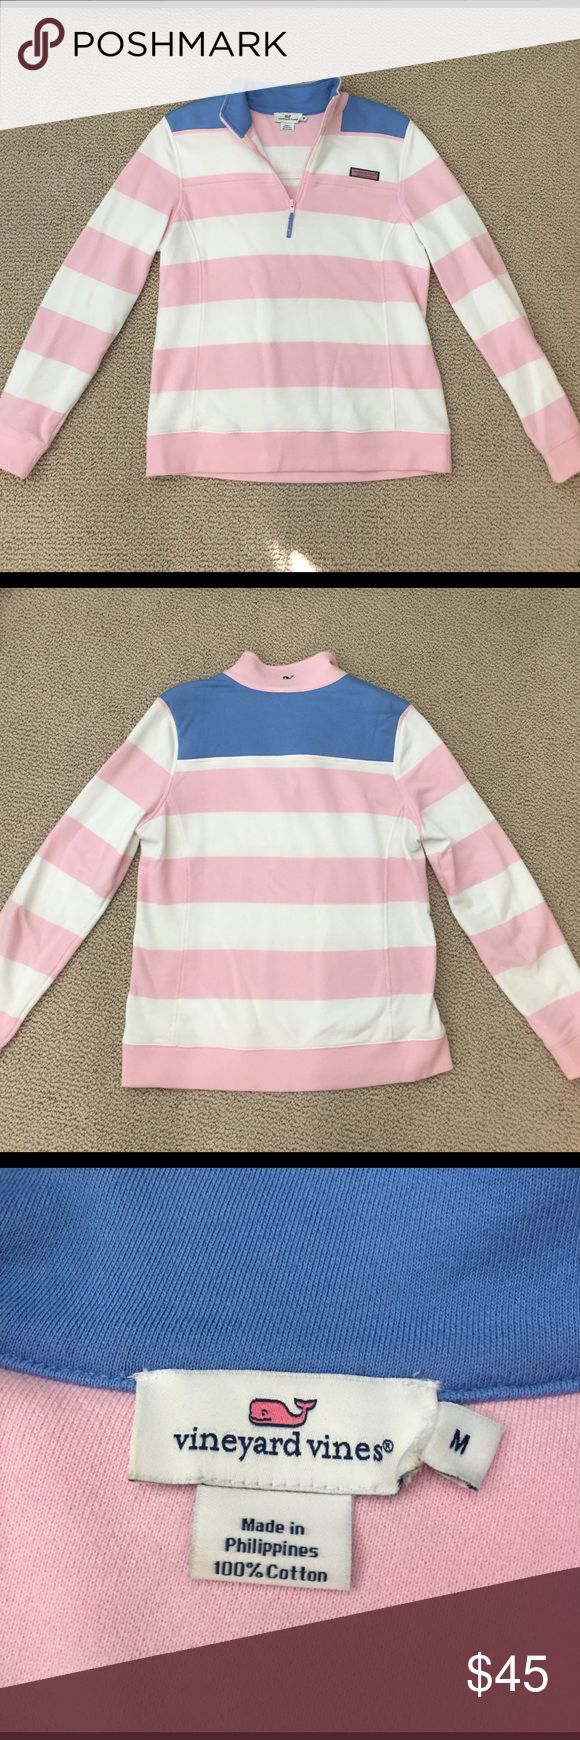 Vineyard Vines Women's Shep shirt Light pink and white striped pullover with blue on shoulders WORN ONCE Vineyard Vines Tops Sweatshirts & Hoodies